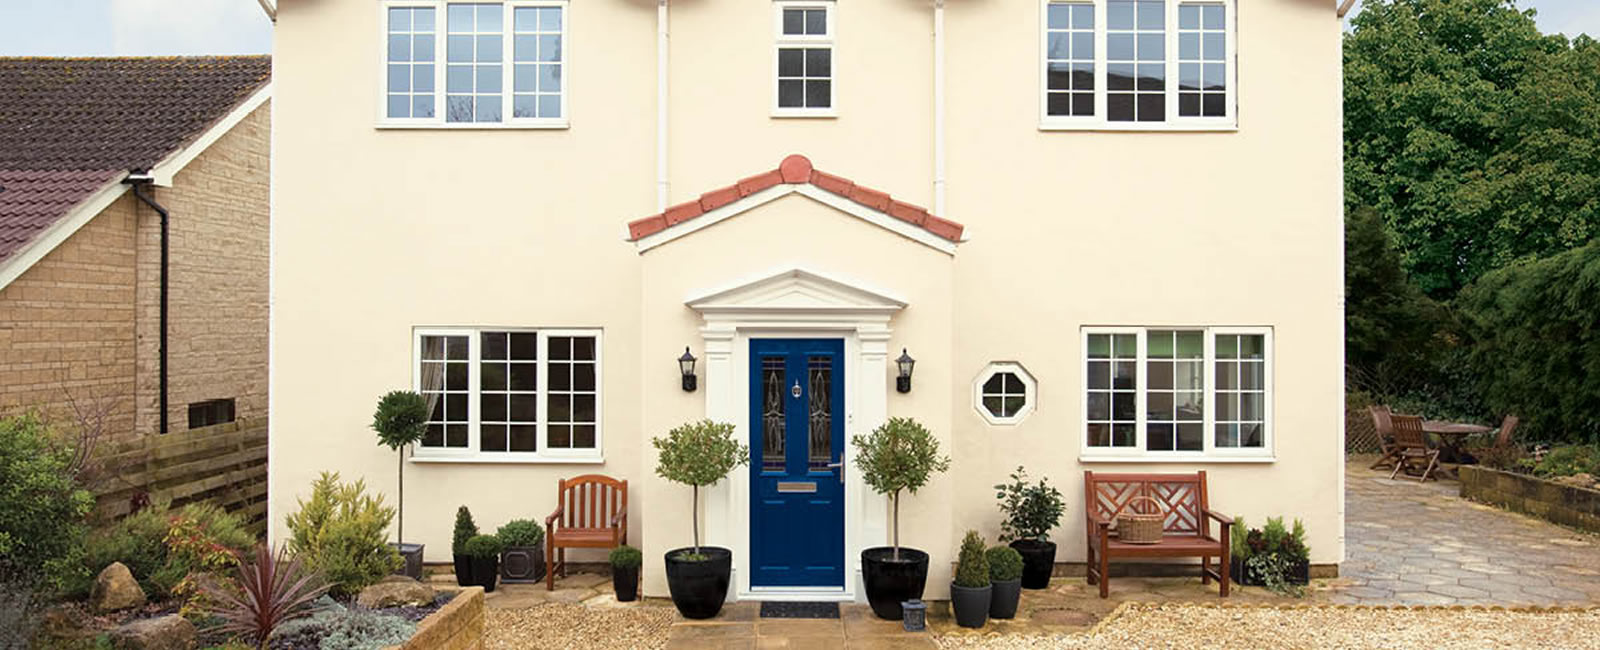 House Painter in East Sussex